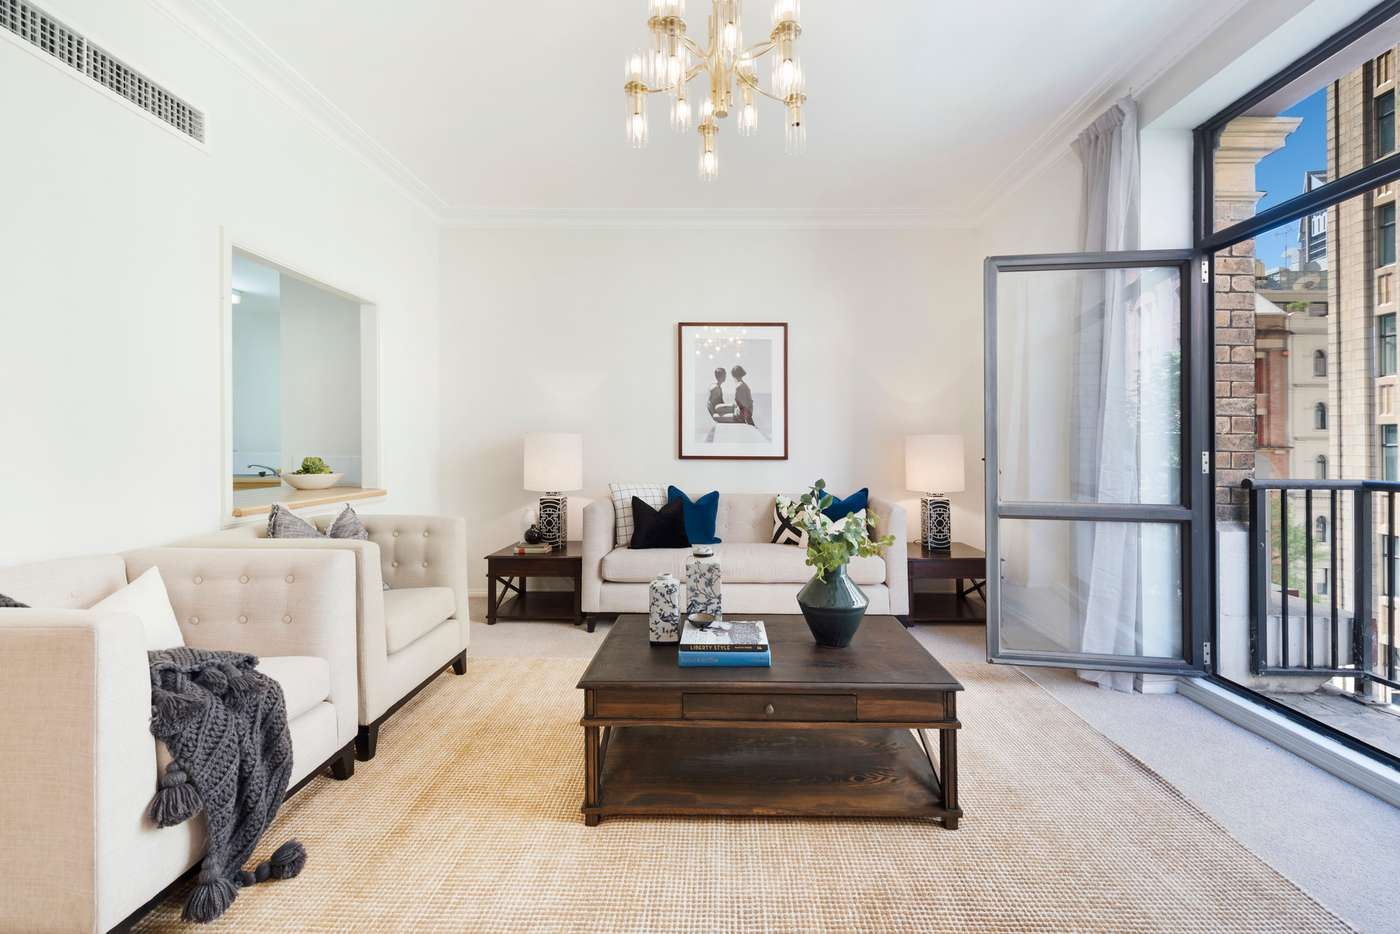 Main view of Homely apartment listing, 41/181 Clarence Street, Sydney NSW 2000